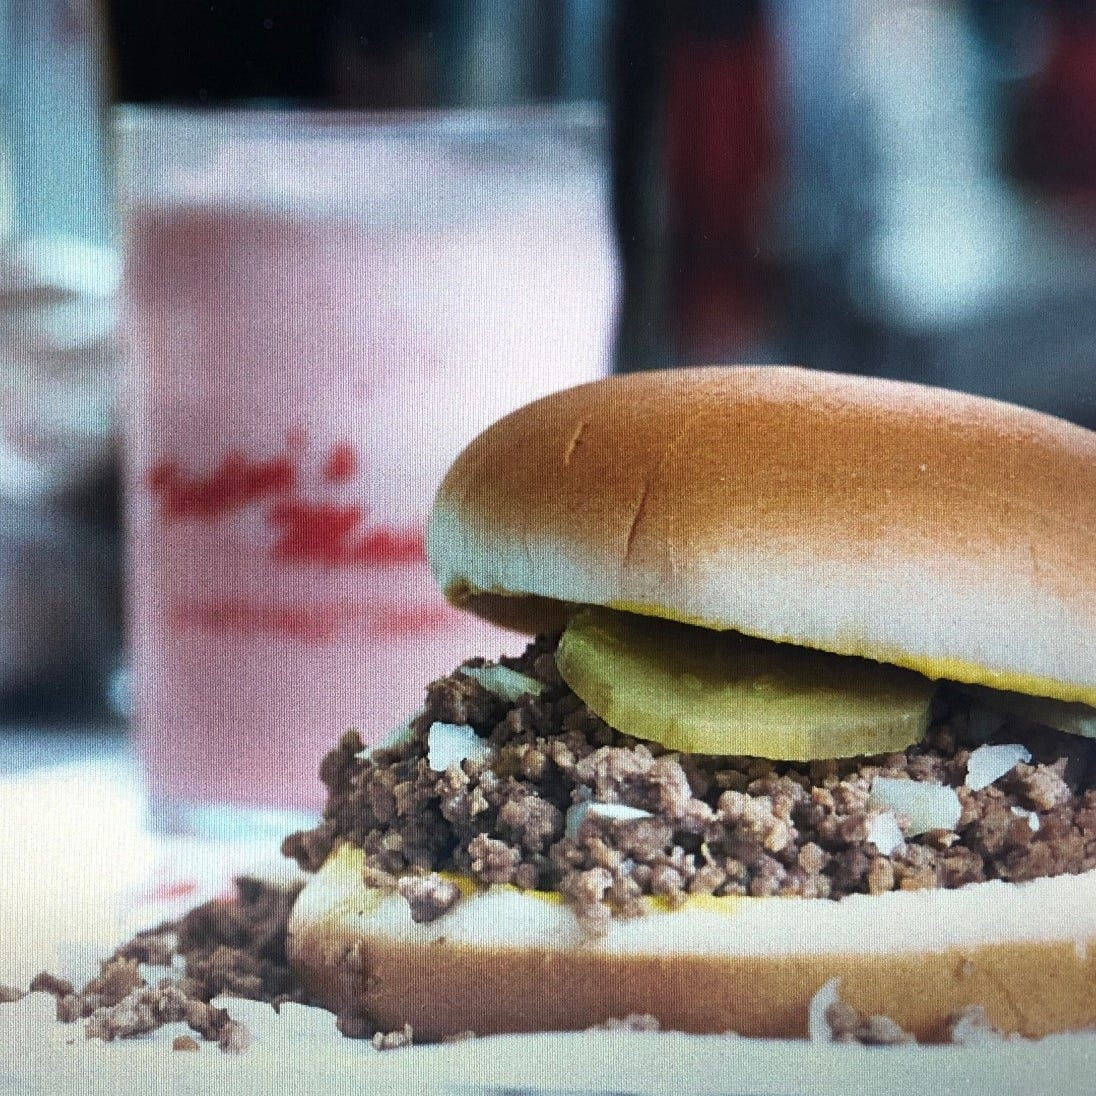 This Marshalltown landmark has been serving loose meat sandwiches for 90 years